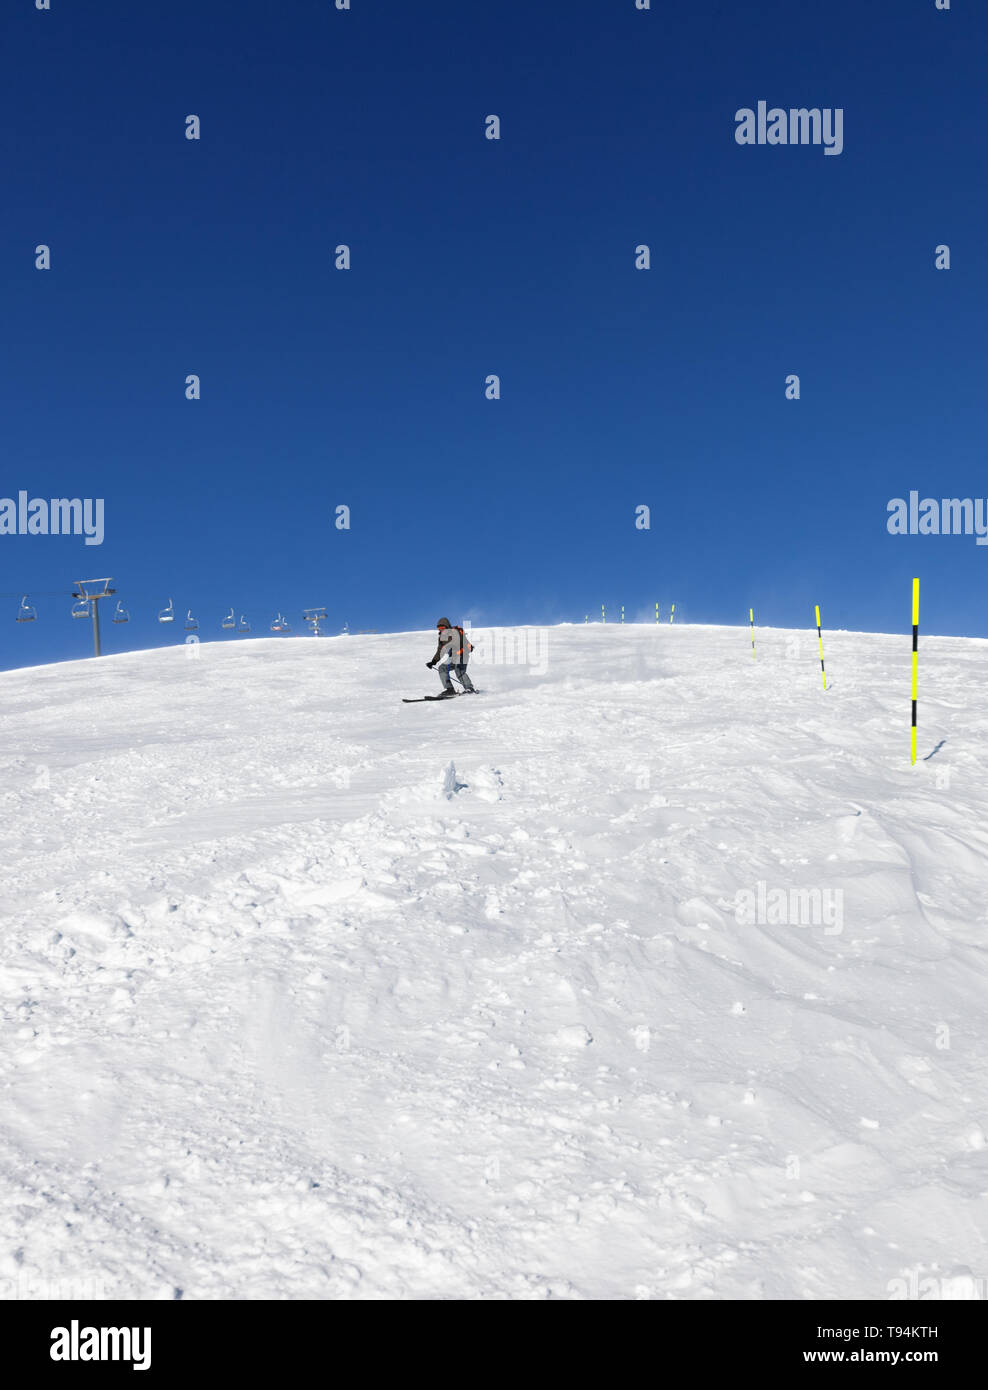 Skier downhill on snowy ski slope in sunny winter day. Caucasus Mountains, Georgia, region Gudauri. Wide angle view. - Stock Image